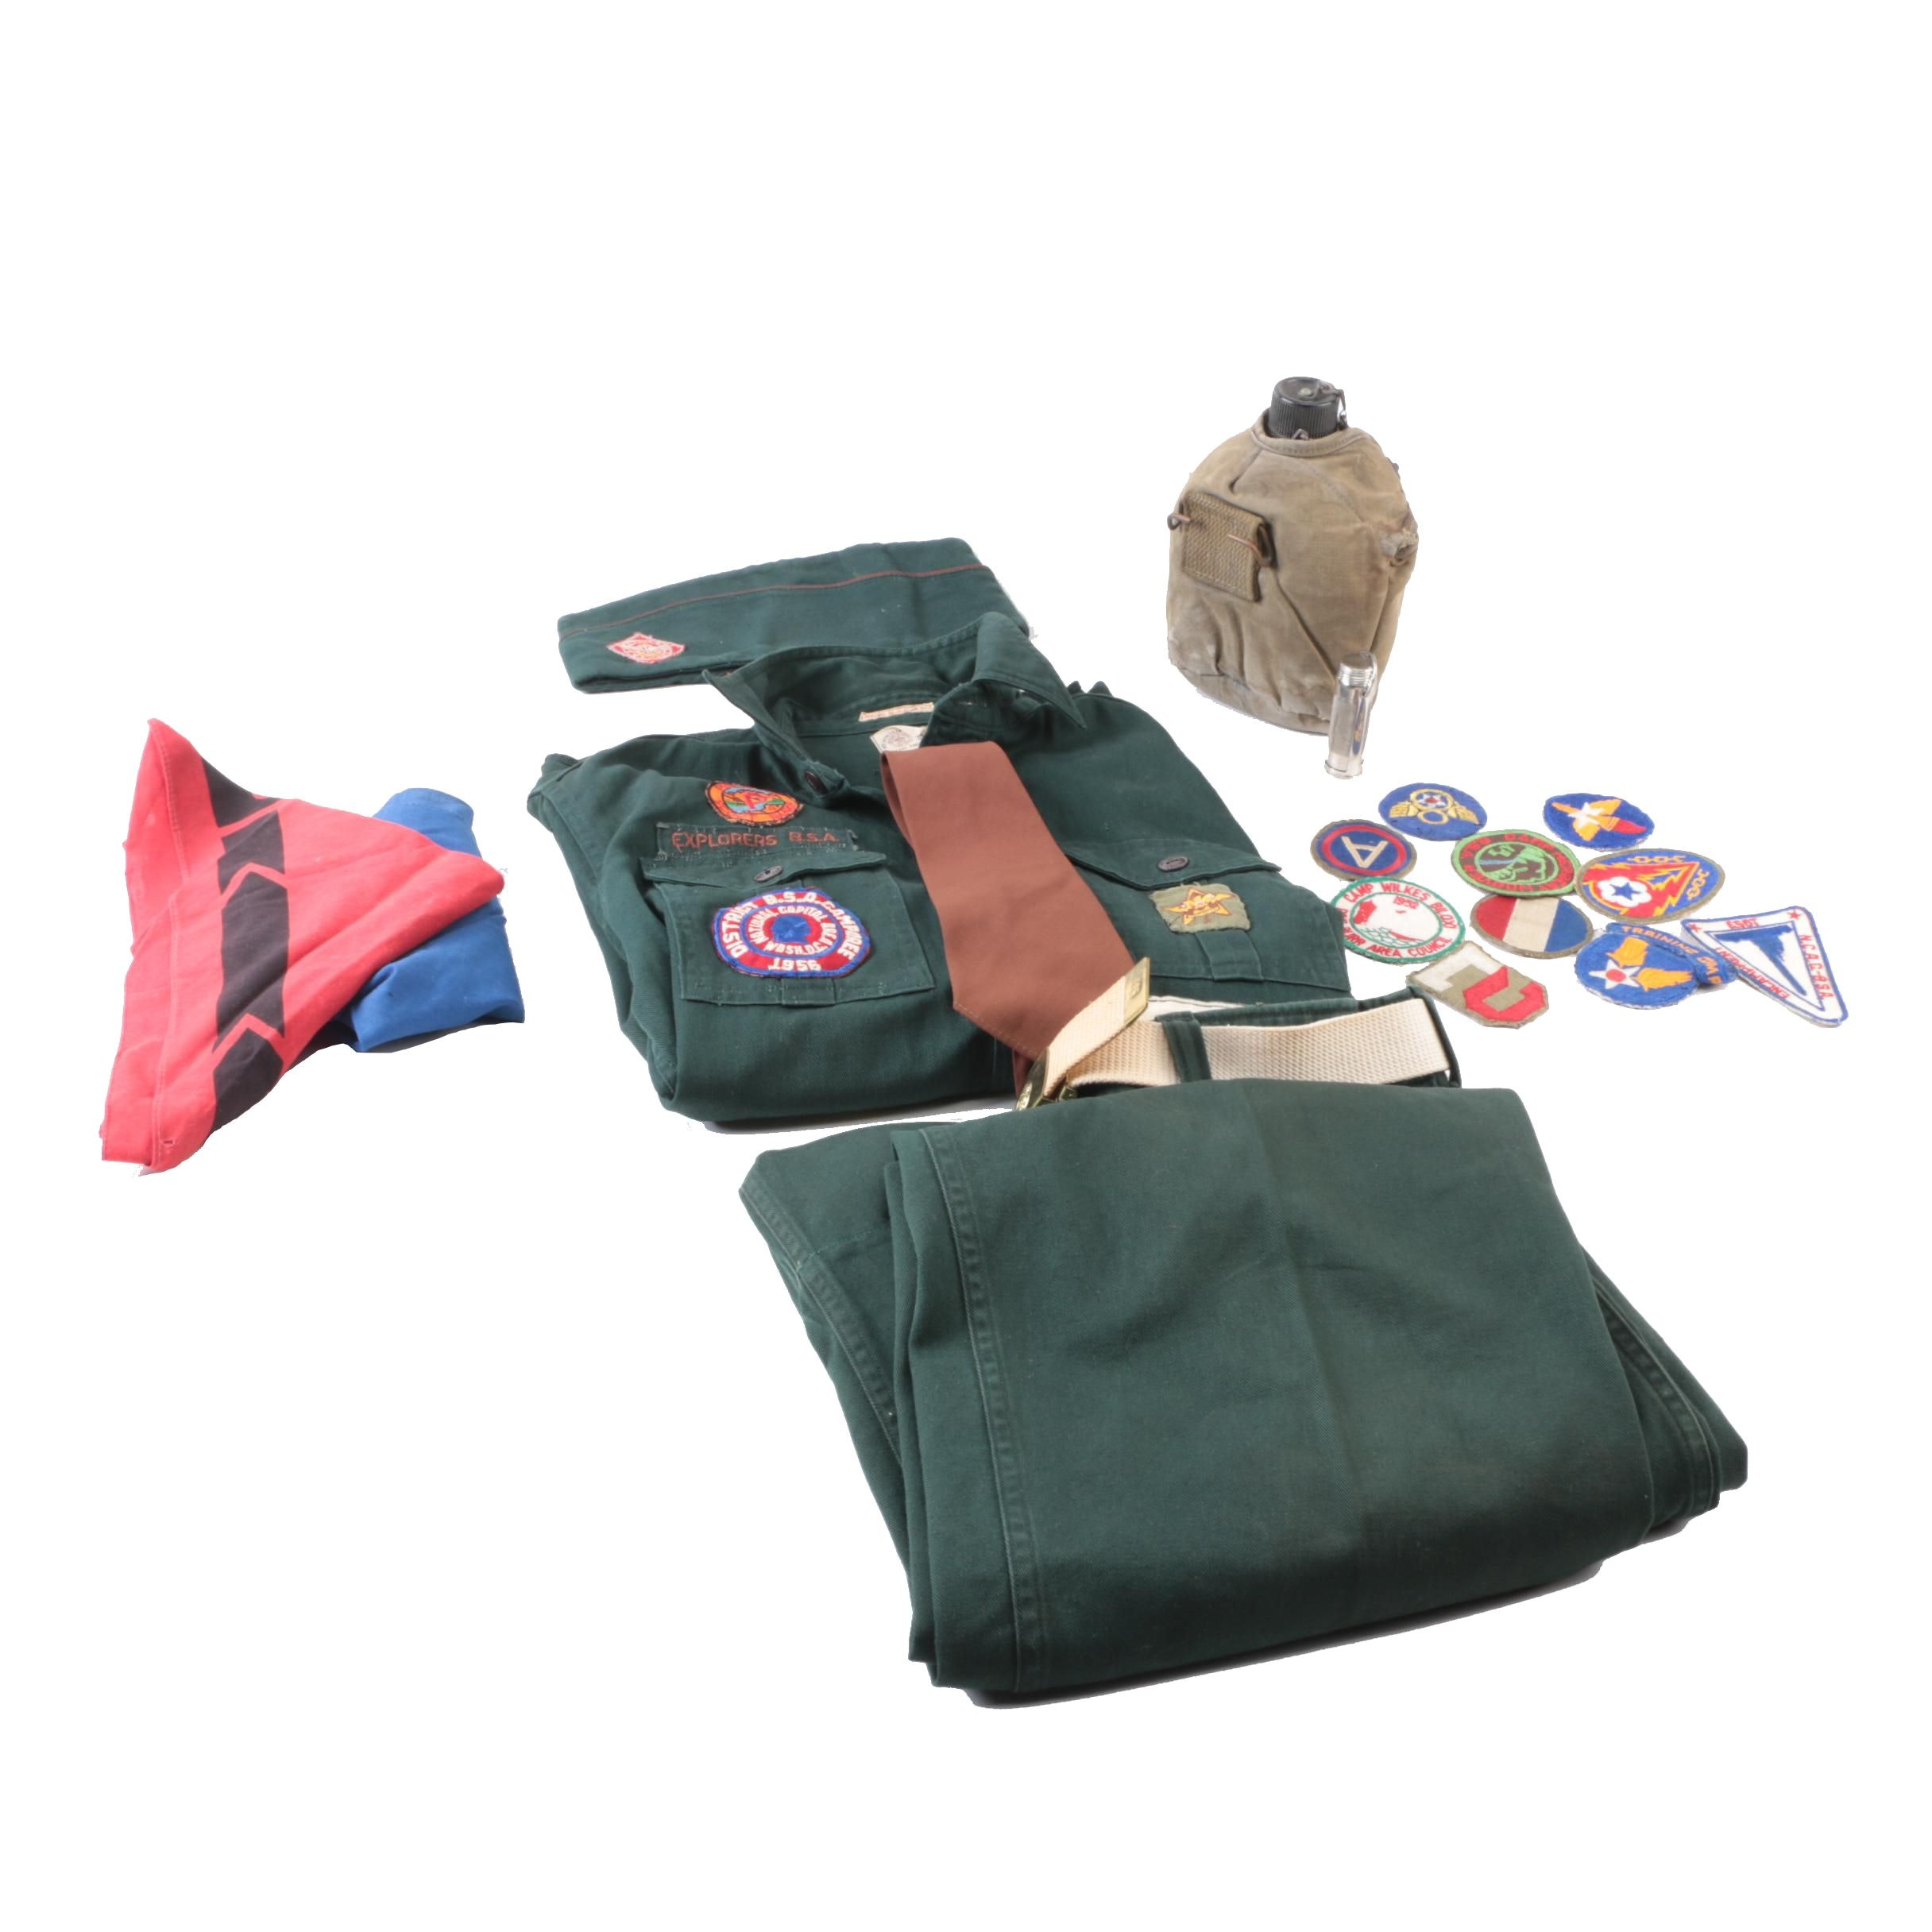 Vintage Boy Scout Uniform Including Patches and Water Canteen